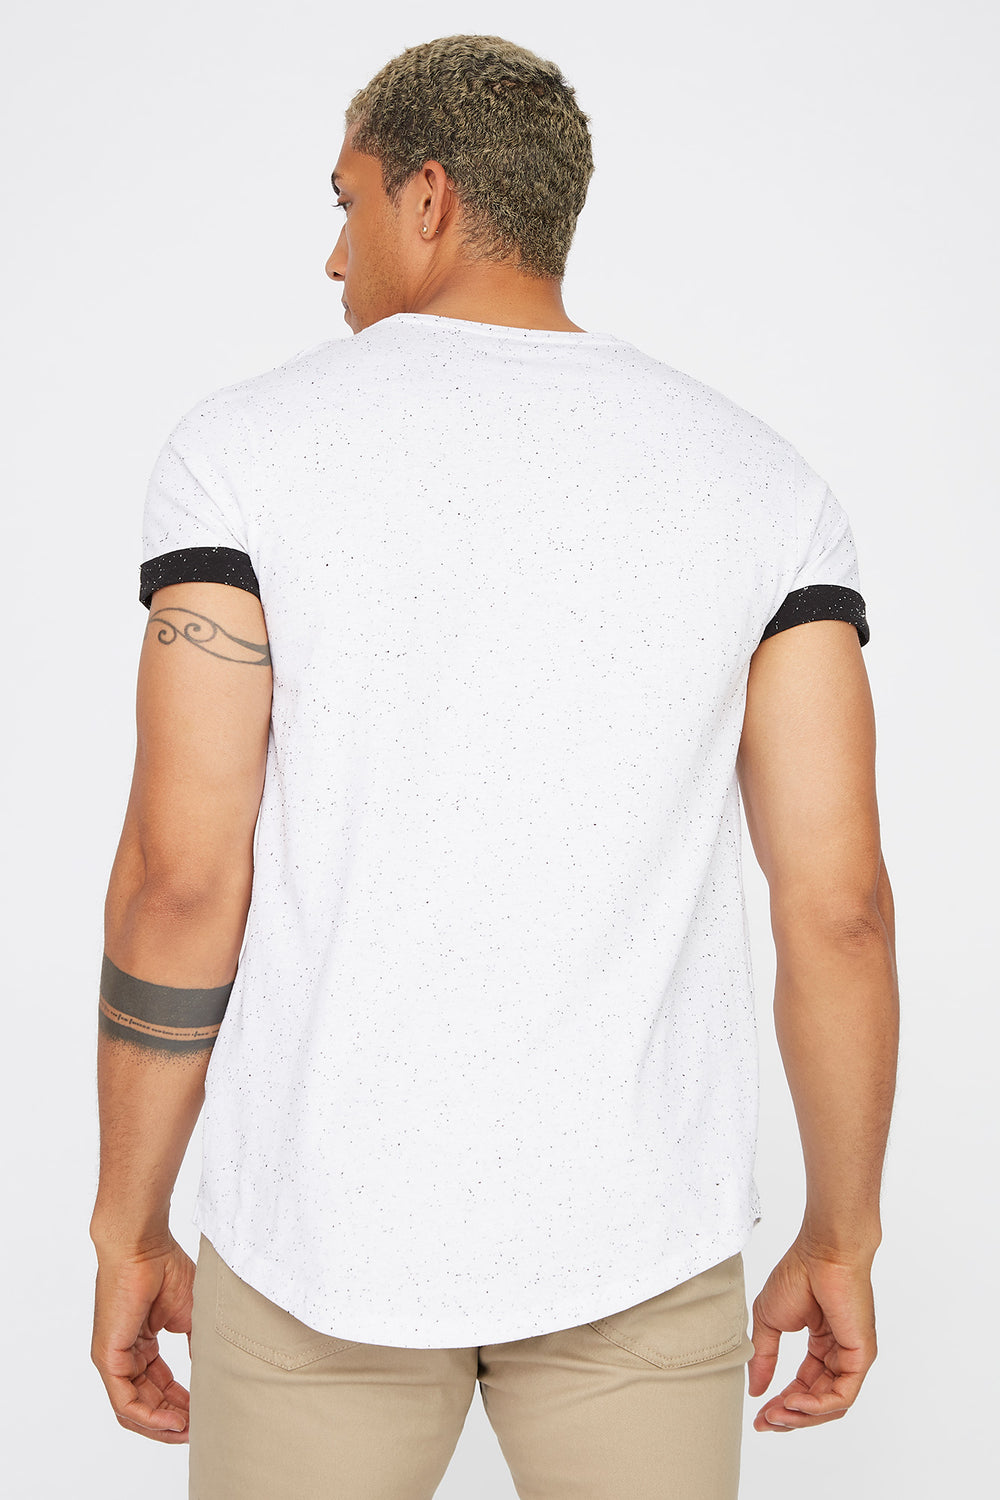 Speckled Cuffed Sleeve T-Shirt White